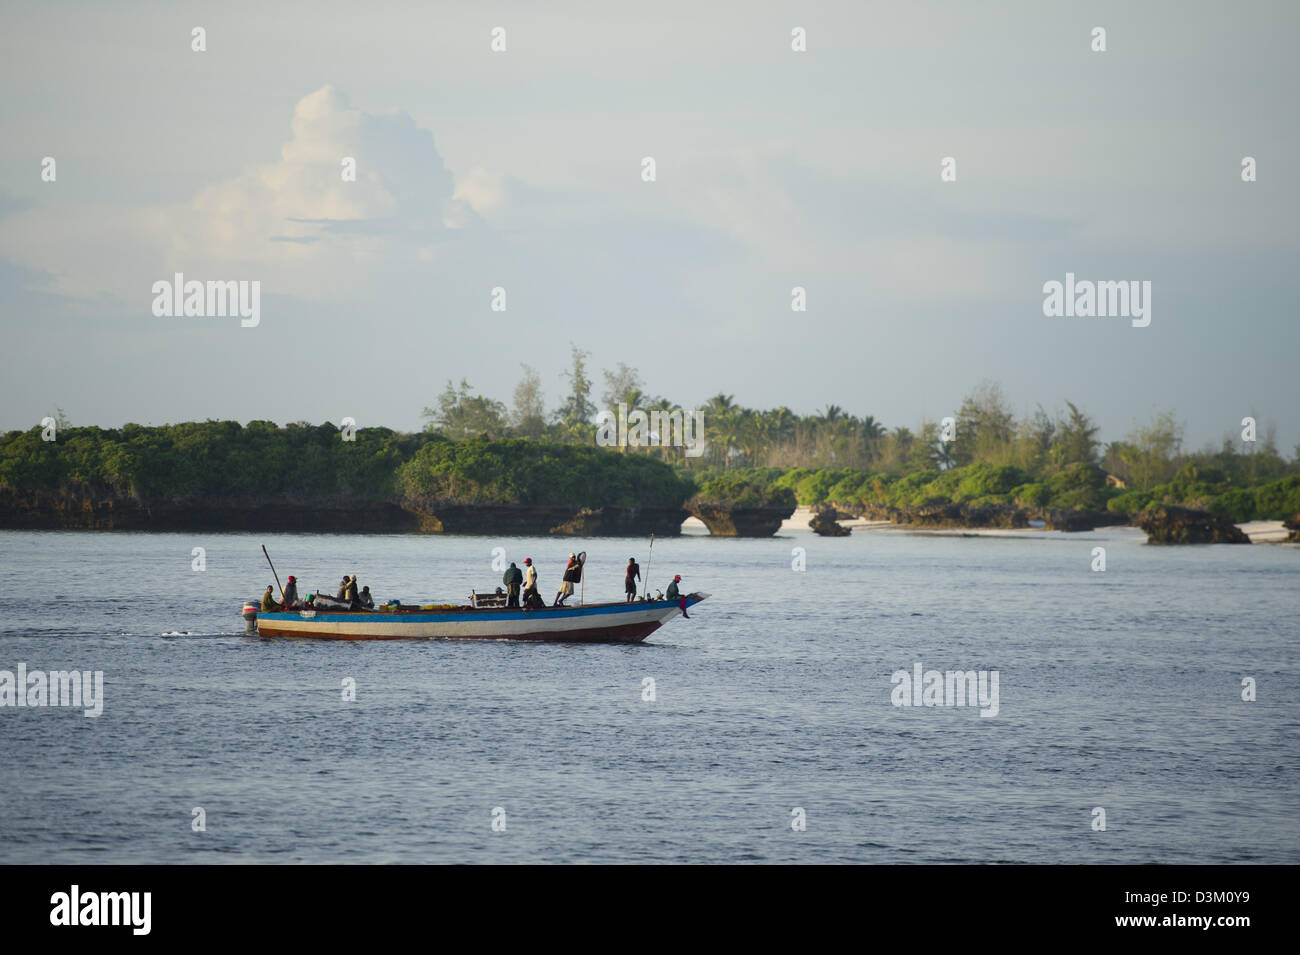 Fishing boat, Turtle Bay, Watamu, Kenya - Stock Image